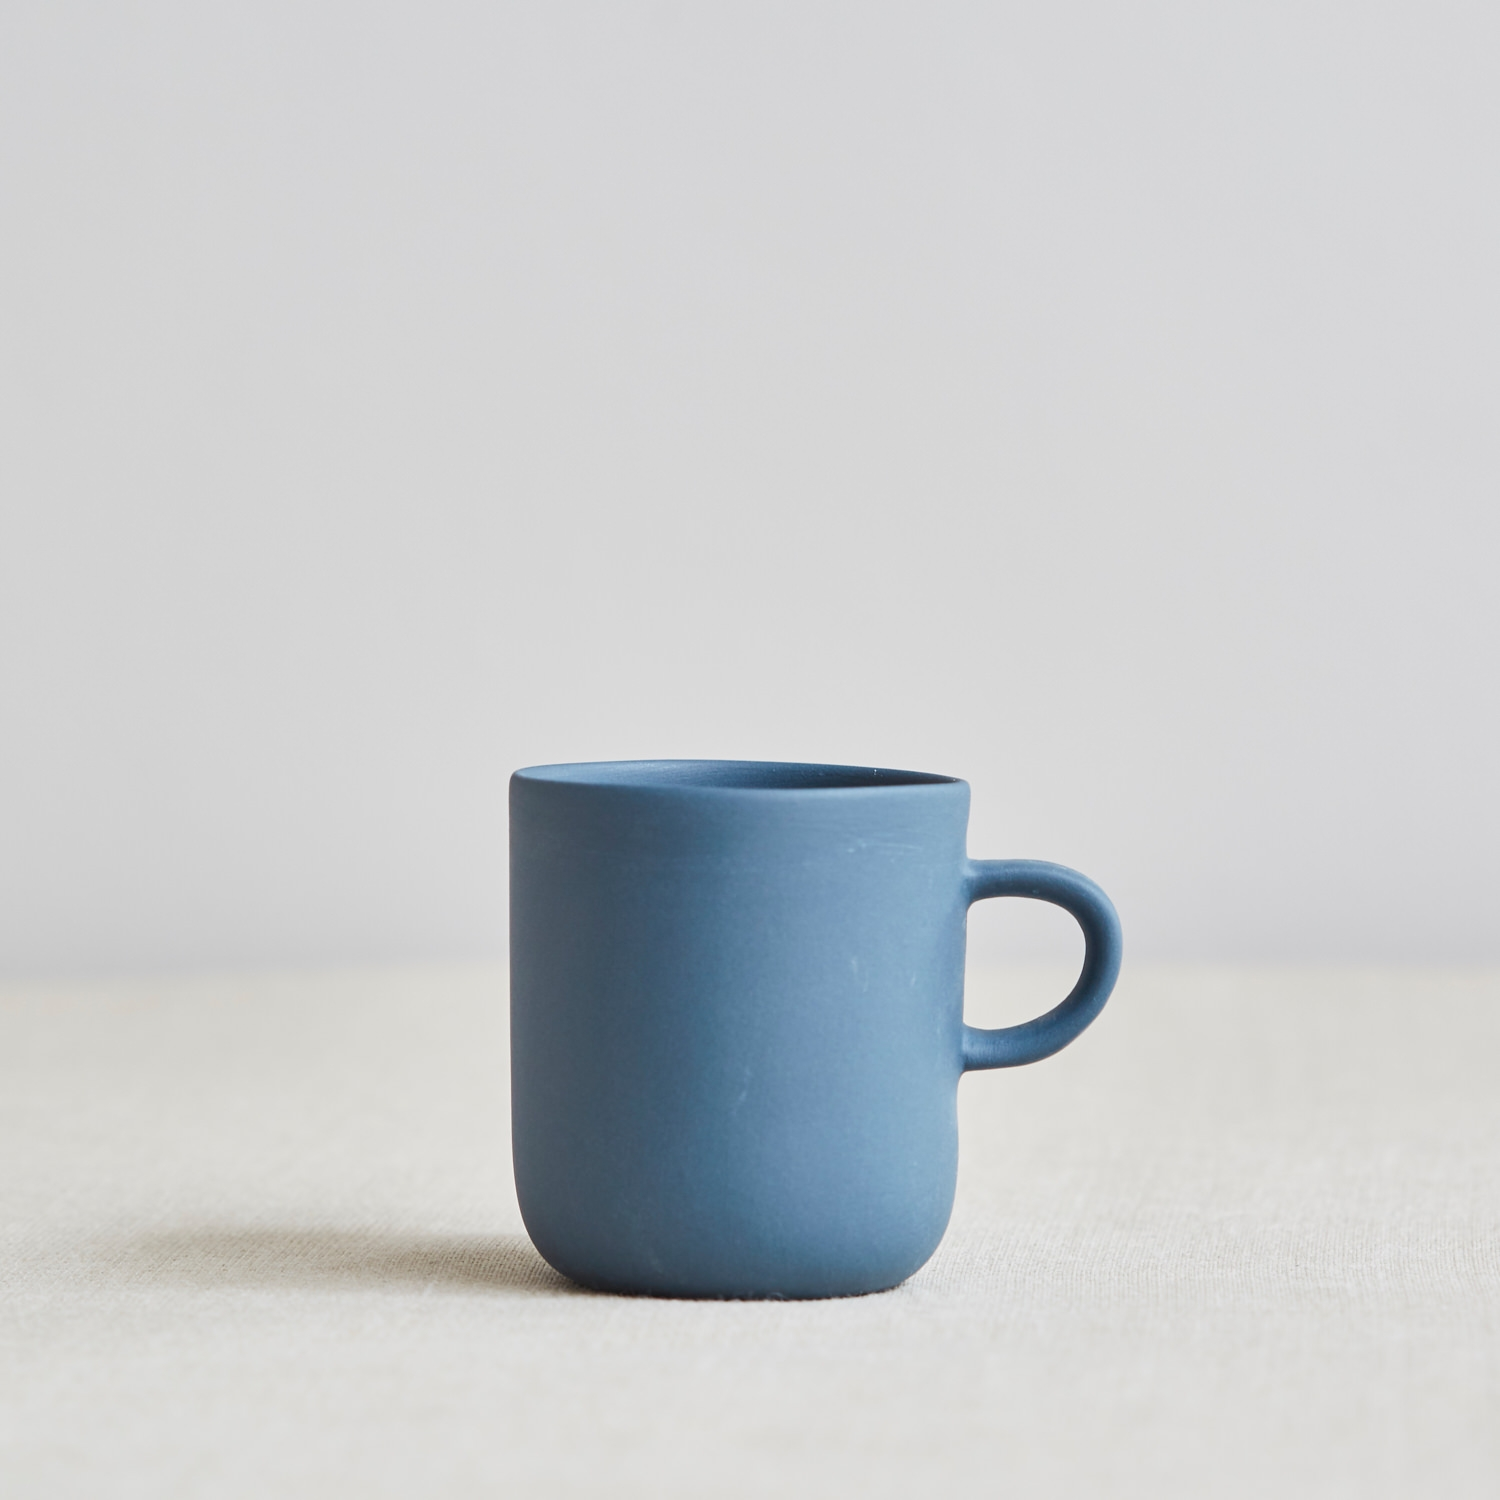 Product - In most cases I recommend we shoot your individual products on a plain background/surface. This could be a combination or materials (see Sue Pryke mug with linen surface and grey wall) or an infinity curve of plain paper such as white or light grey. See gallery below for more examples.